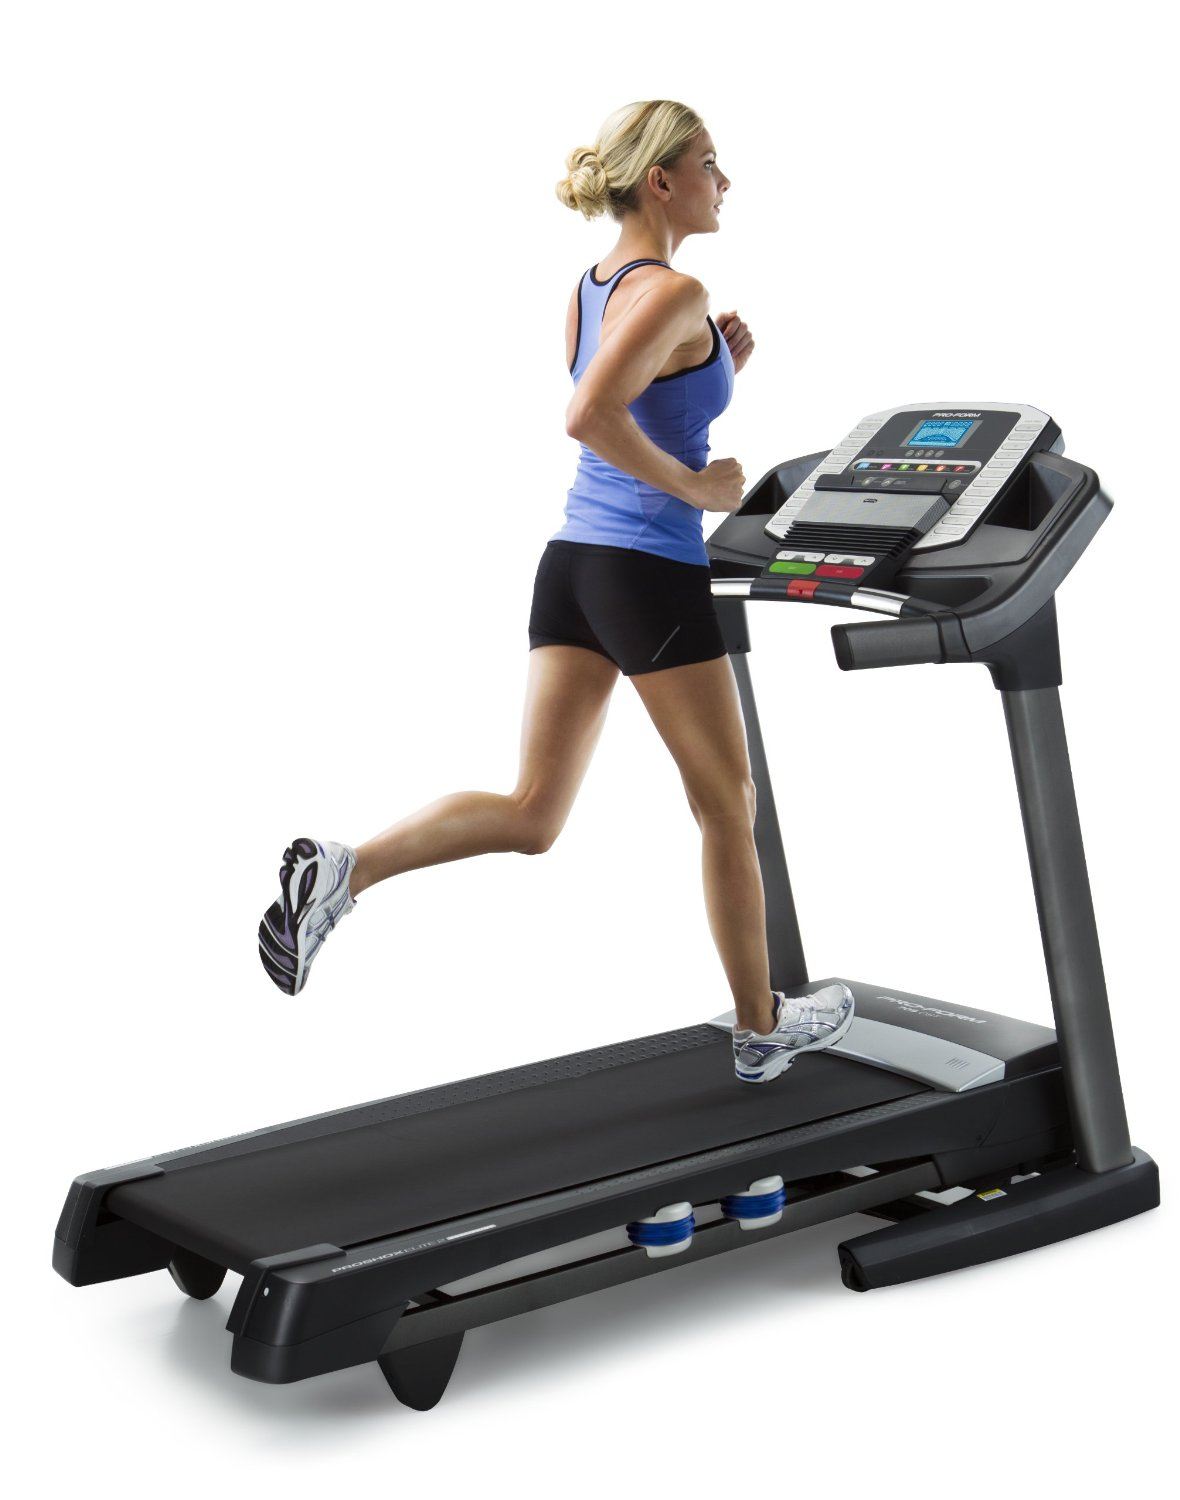 Best Treadmills For Home >> Proform 590t - We Put It Through Its Paces To See If Its Any Good